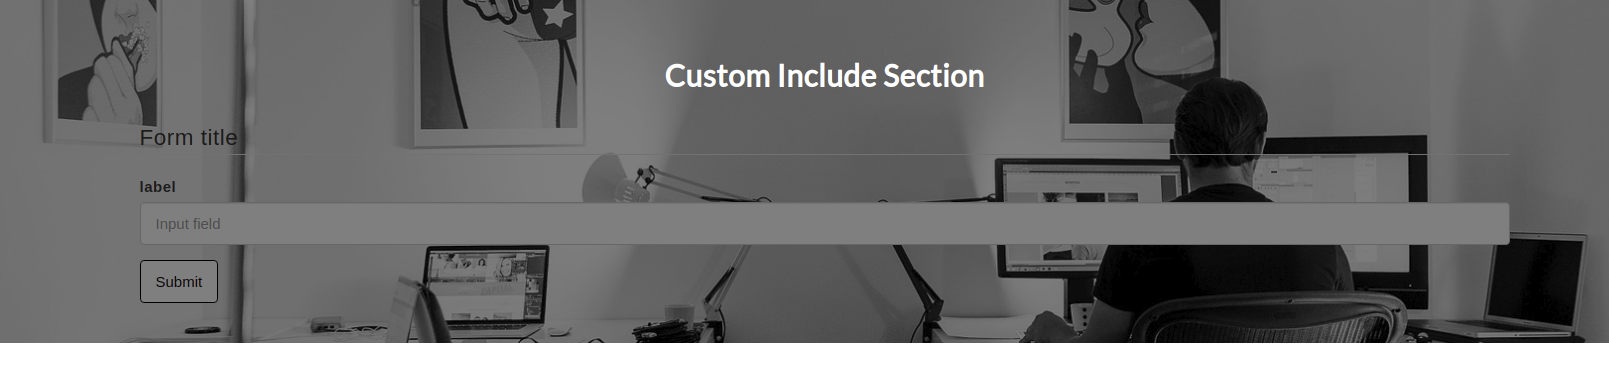 custom_include_section